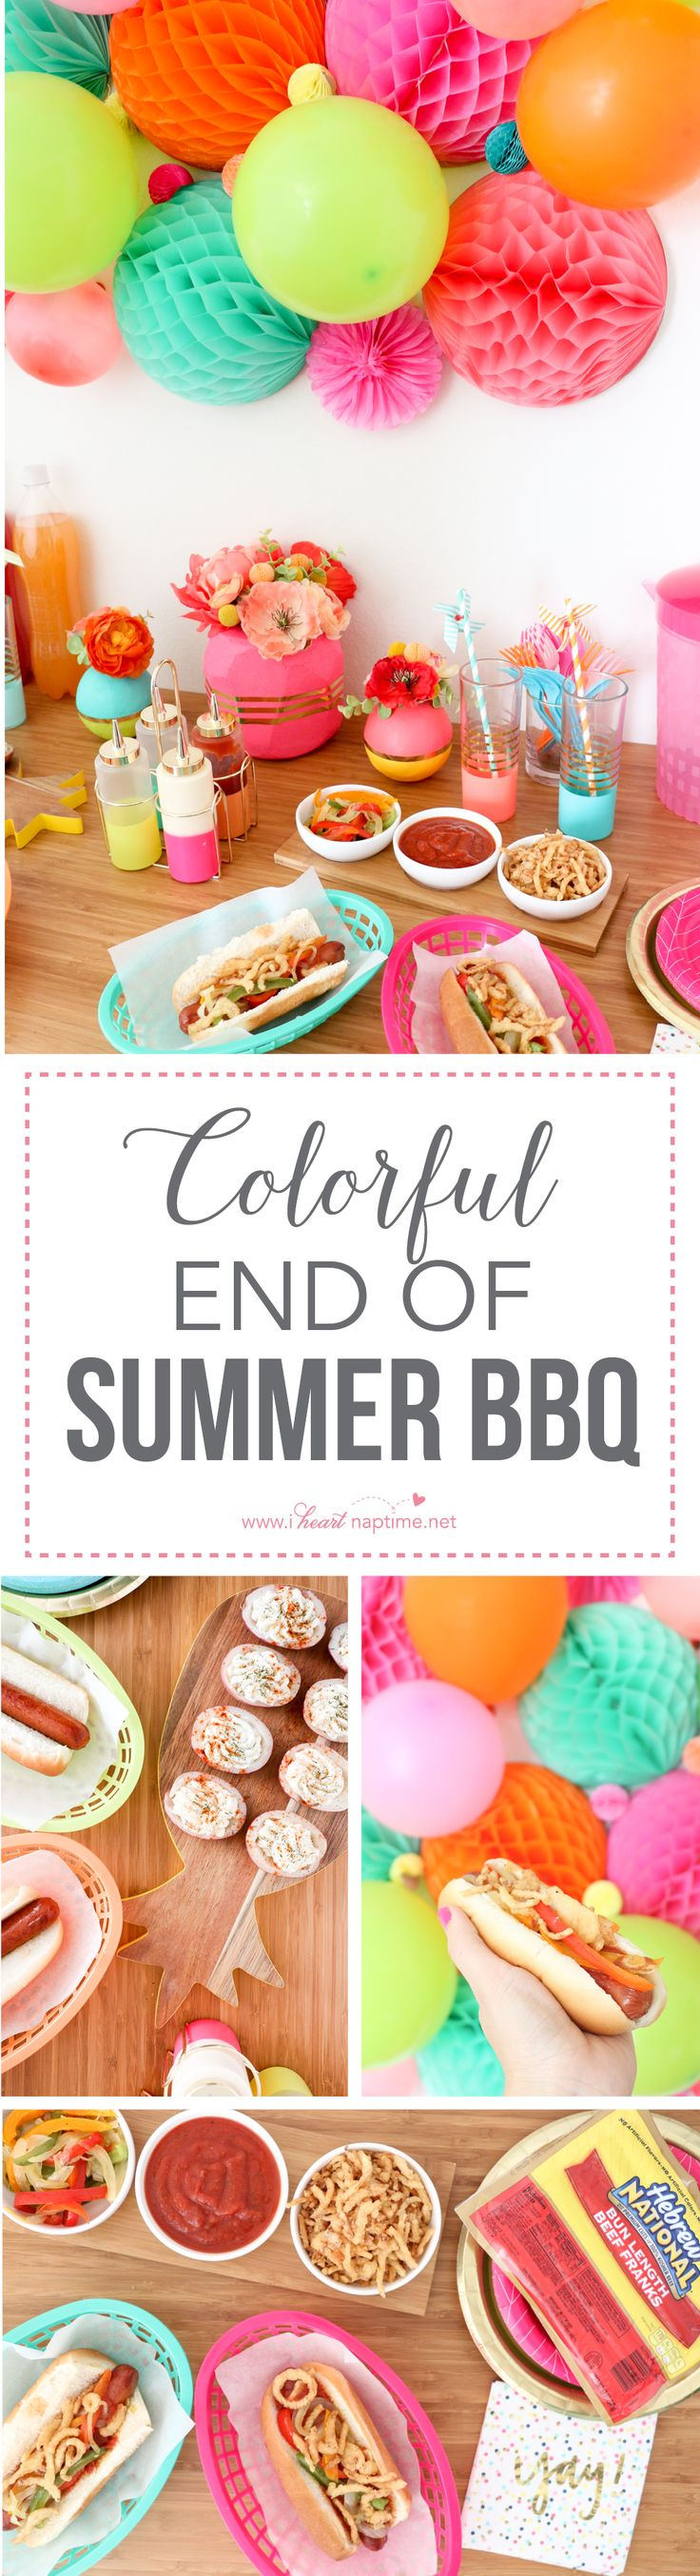 Colorful End of Summer BBQ ideas